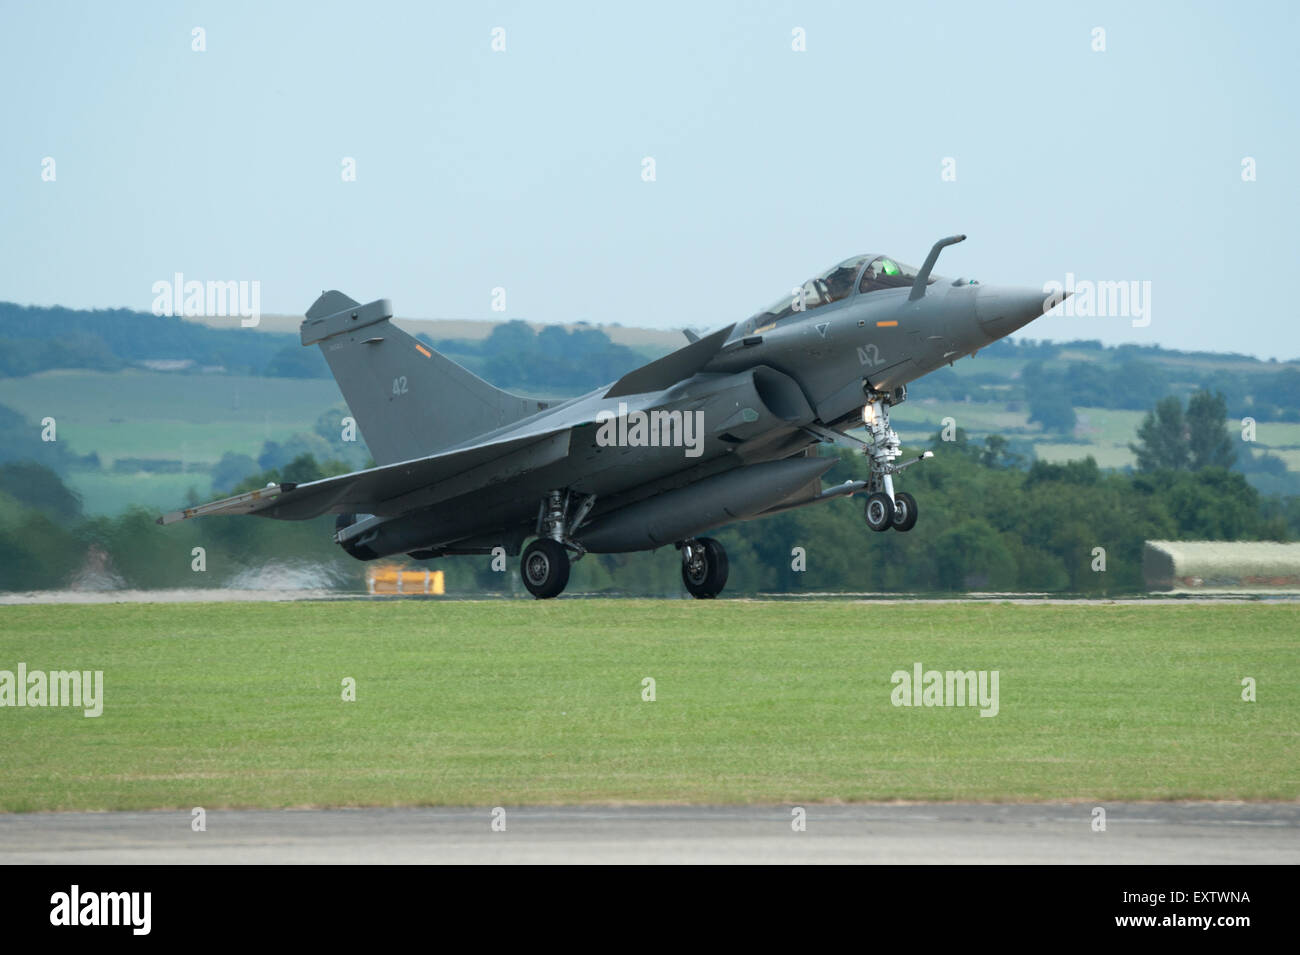 The Dassault Rafale M is a French twin-engine, canard delta wing, multirole fighter aircraft Stock Photo